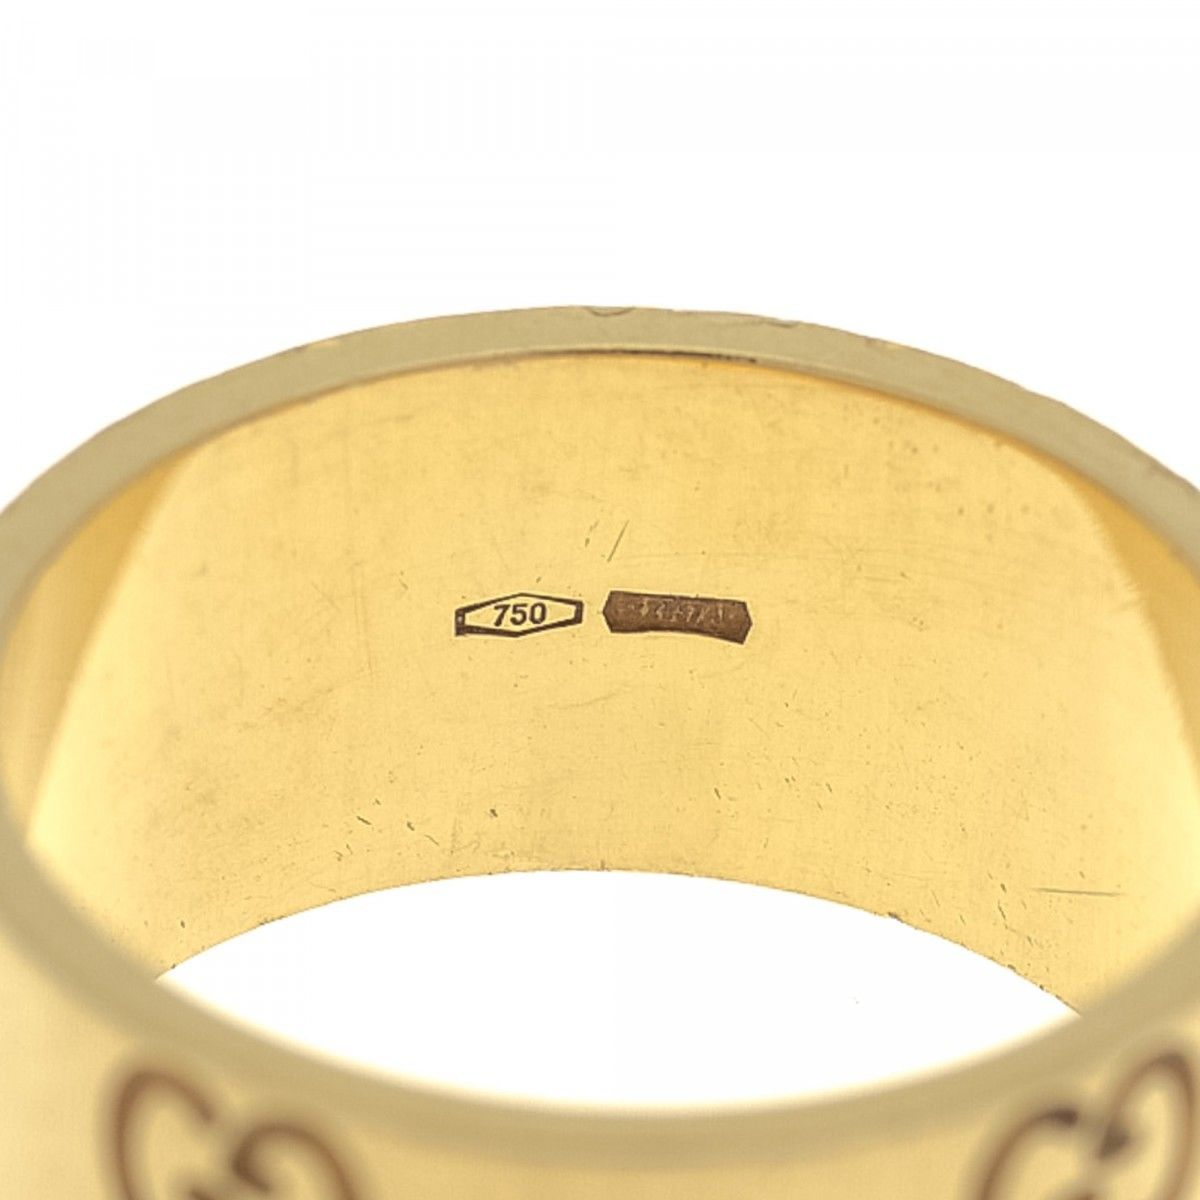 1c507c732 Gucci Icon Gold Ring US 6.25/It 13 18K Yellow Gold - LXRandCo - Pre ...